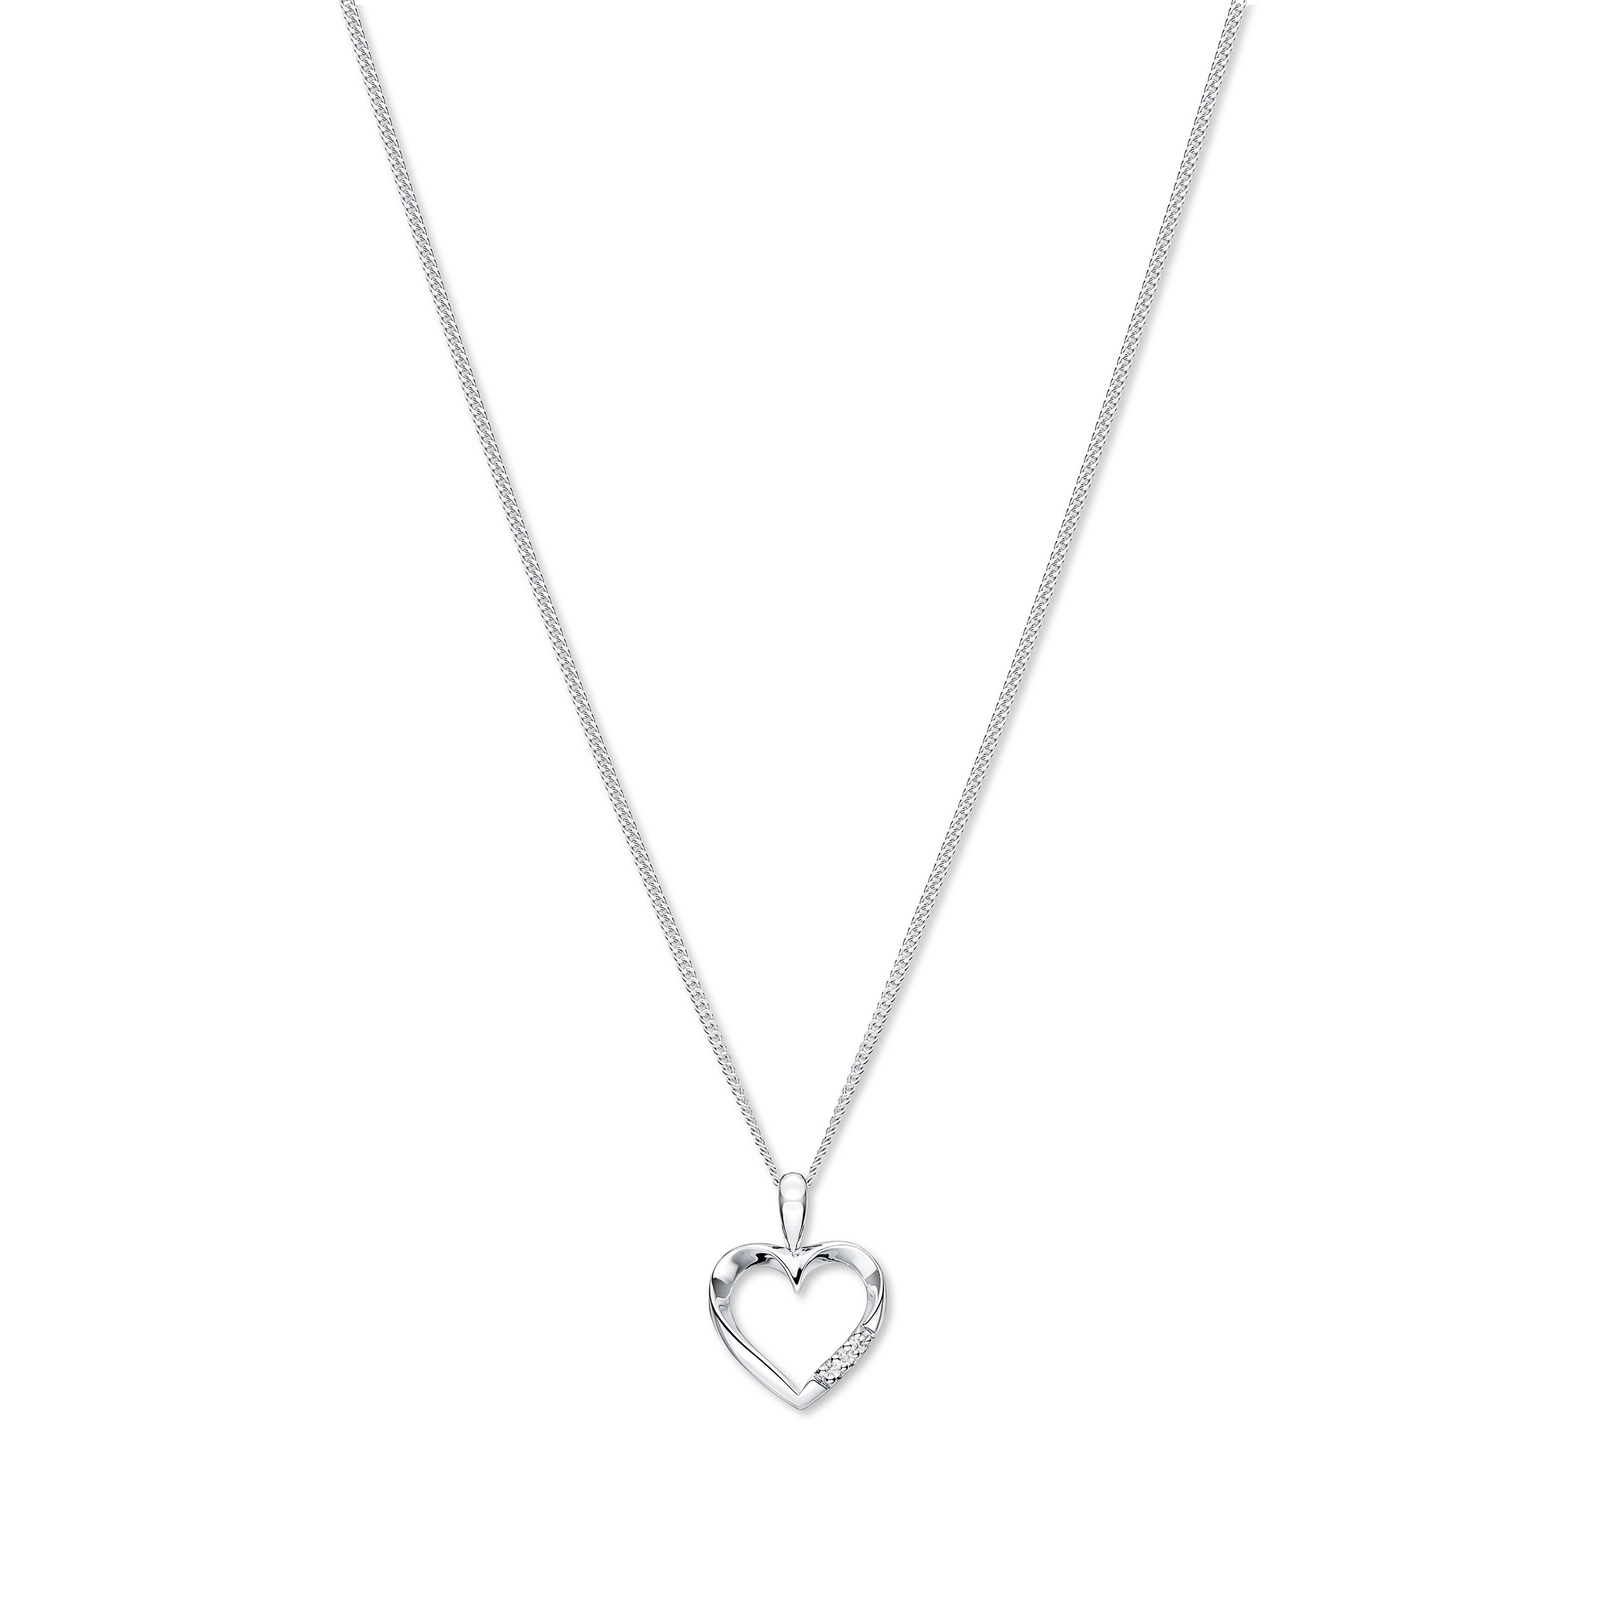 9ct white gold diamond heart pendant necklaces jewellery 9ct white gold diamond heart pendant aloadofball Choice Image